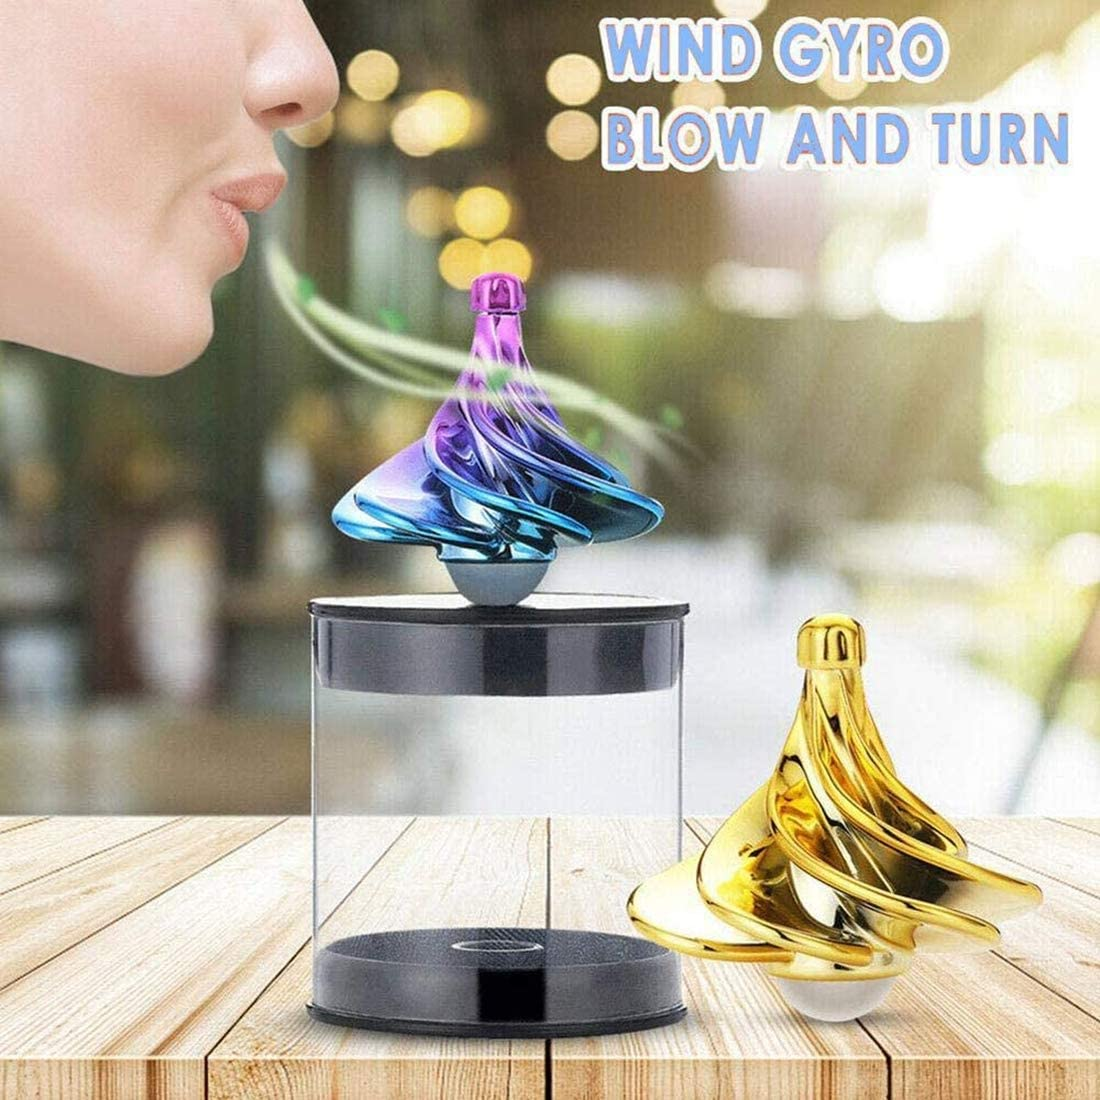 Golden Wind Gyro Desktop Gyro Gift for Christmas Wind Blow Turn Gyro Desktop Decompression Toys Stress Relief Toy Airflow Spinning Gyro Spinning Top